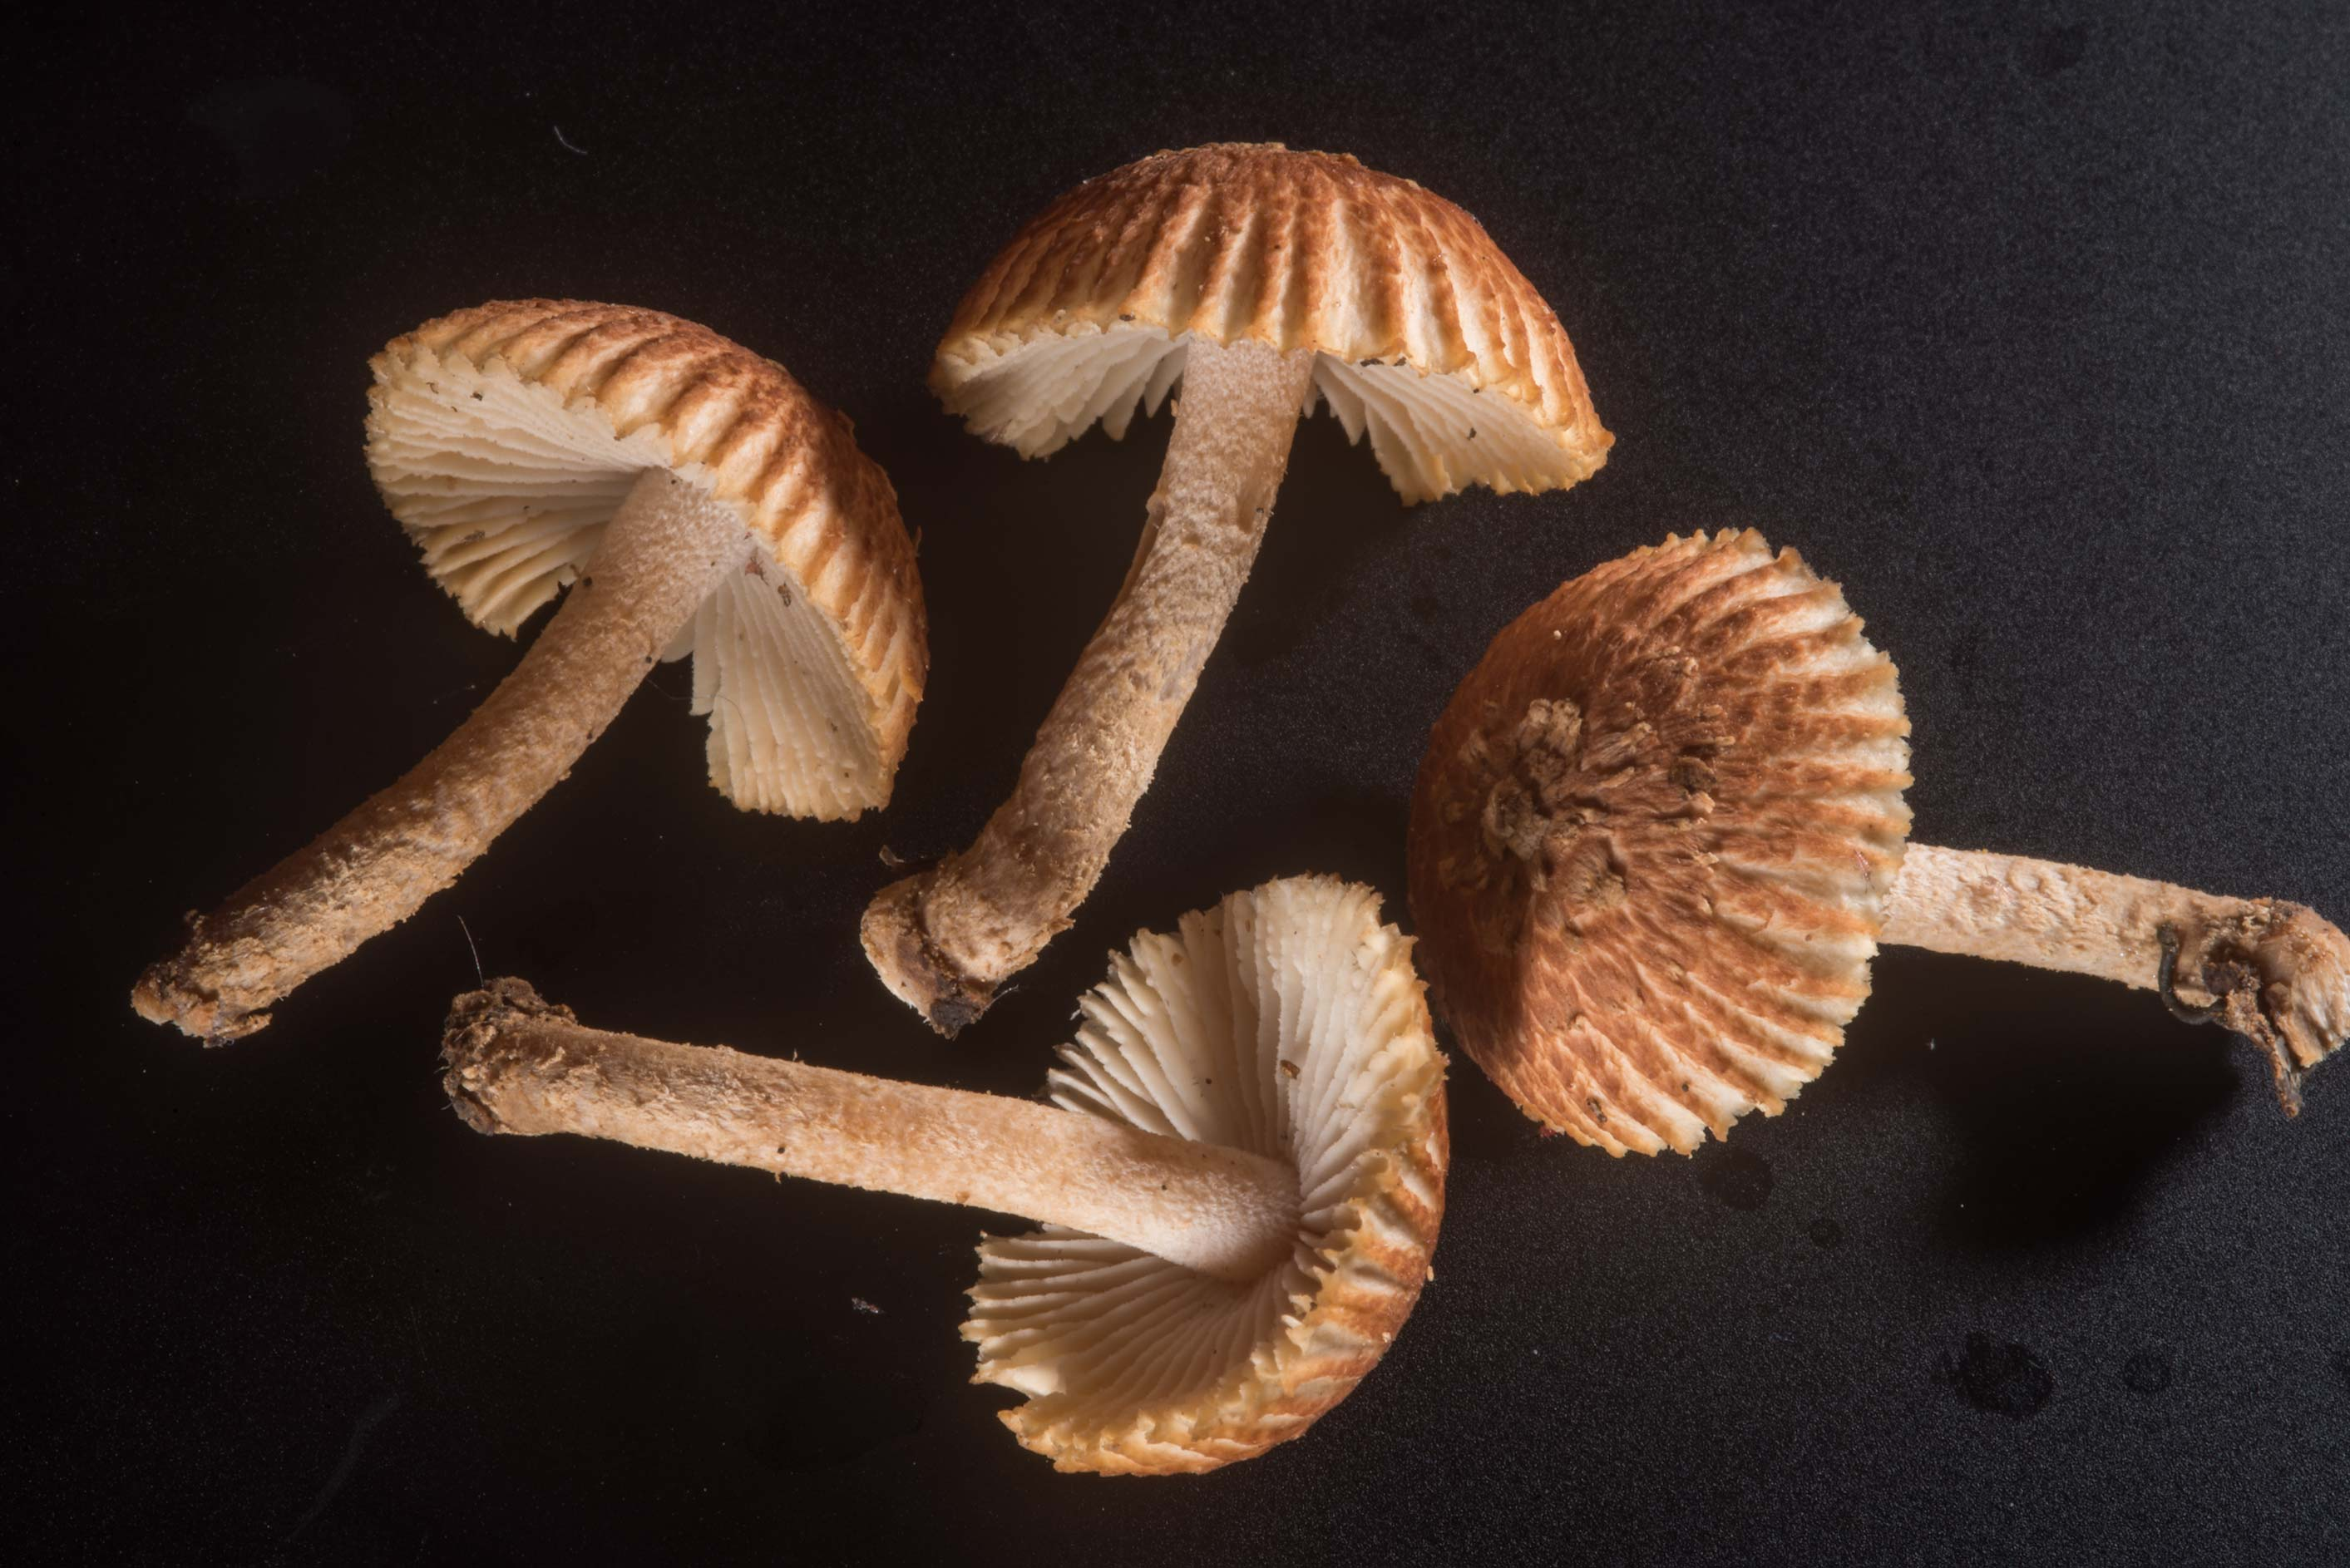 Mushrooms Heliocybe sulcata collected in Hensel Park. College Station, Texas